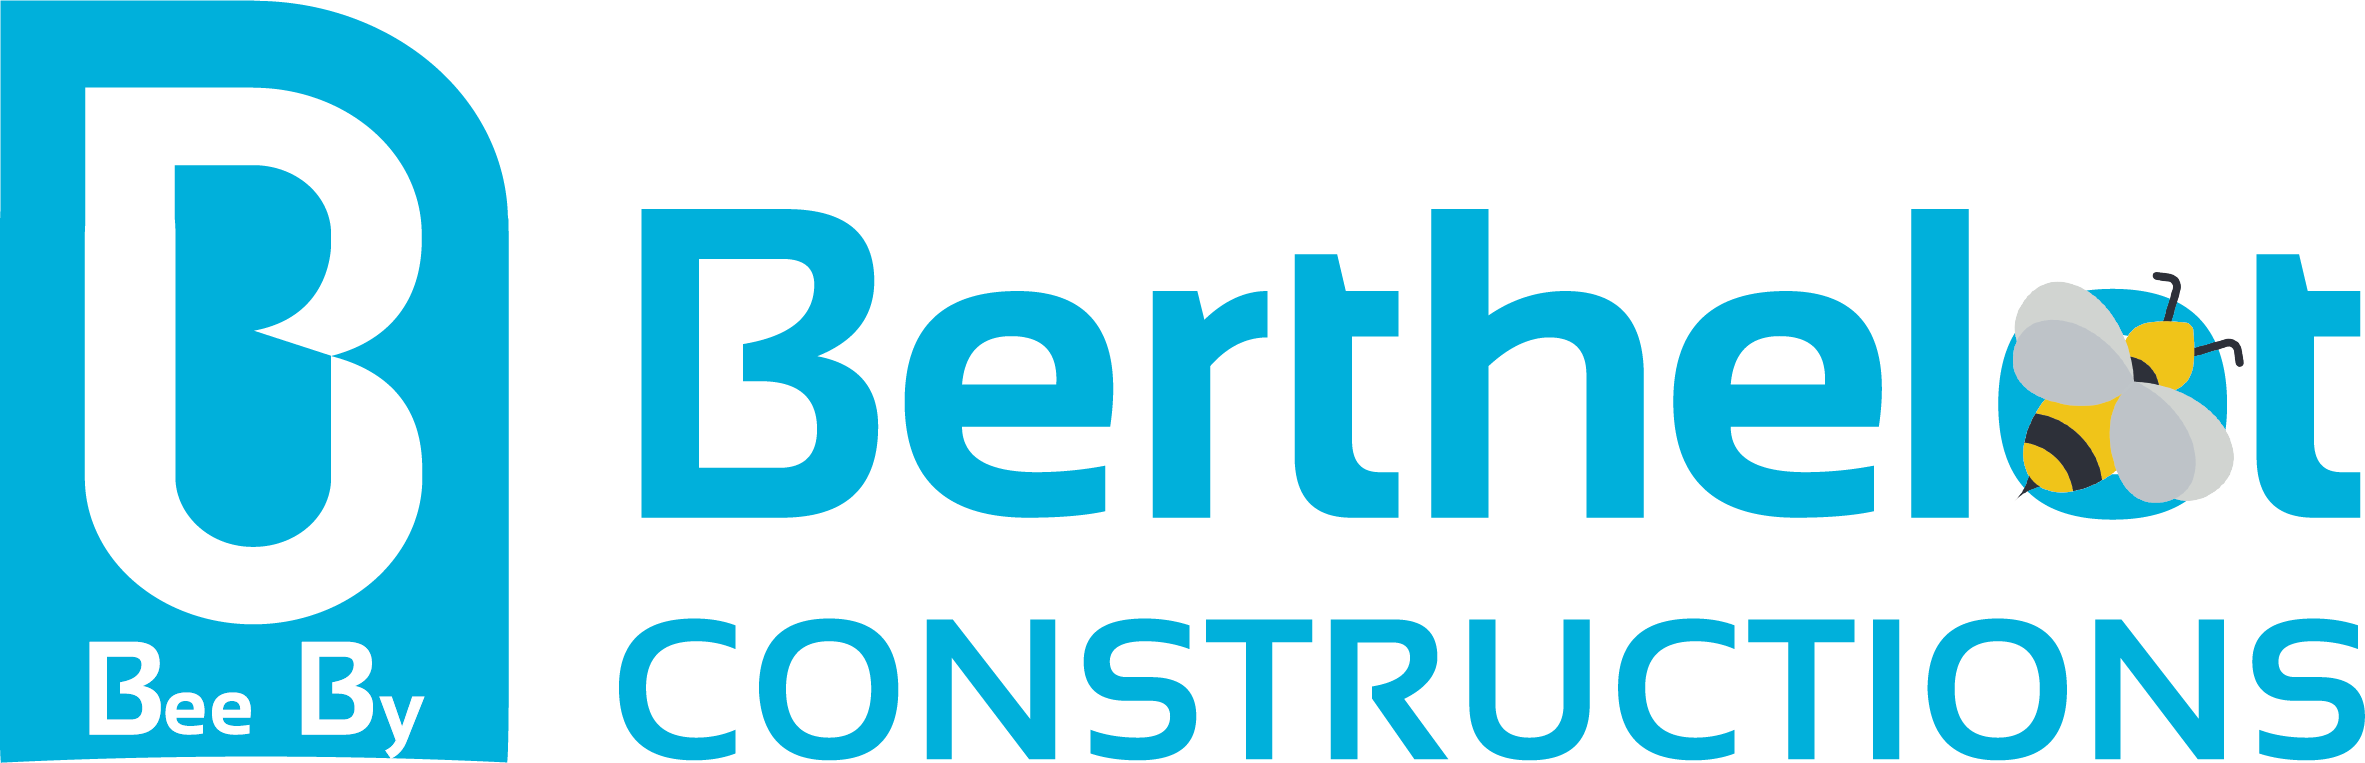 Logo Bee By Berthelot Constructions